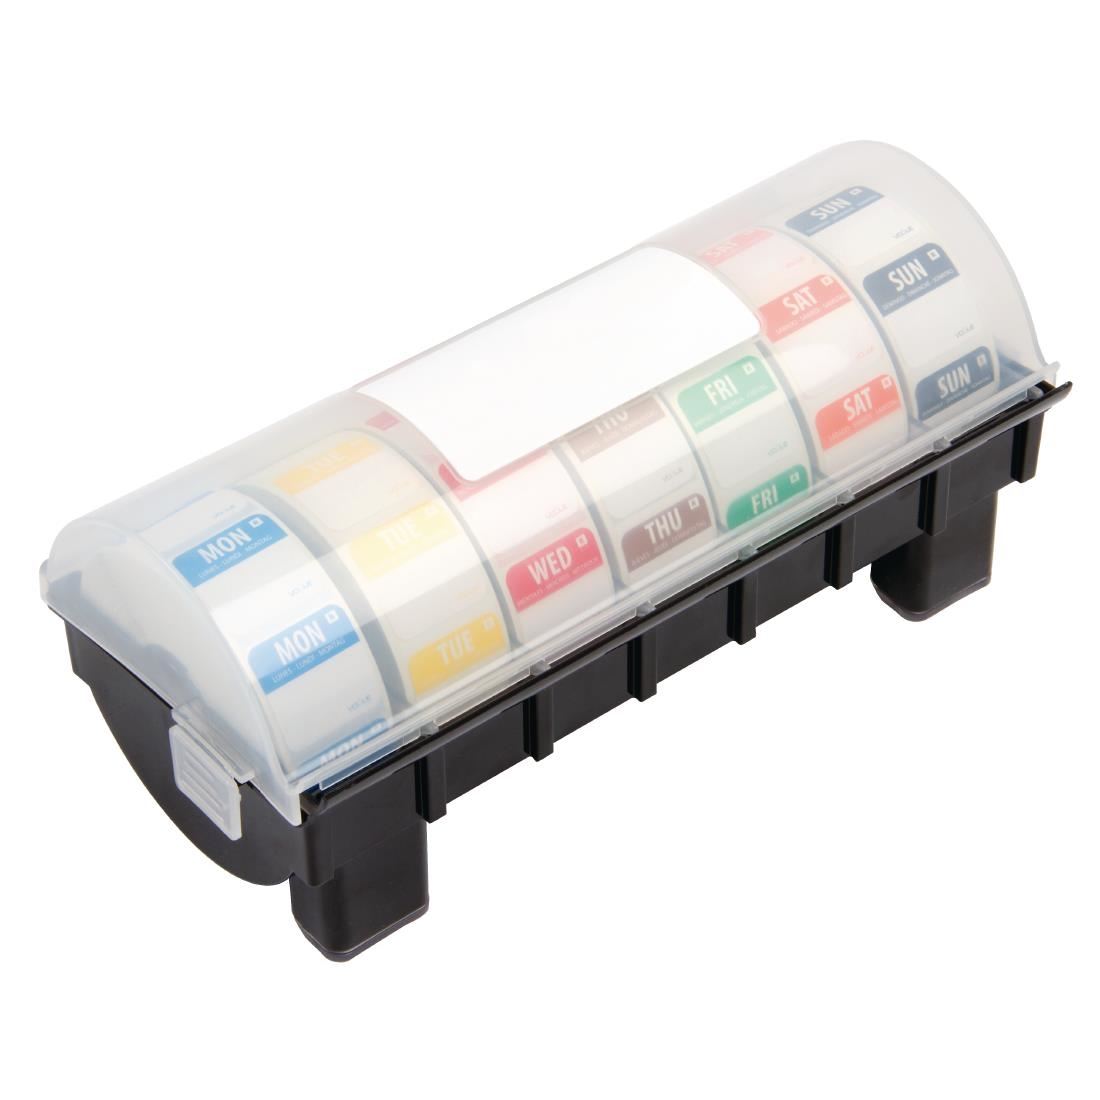 Removable Colour Coded Food Labels with 1 Dispenser